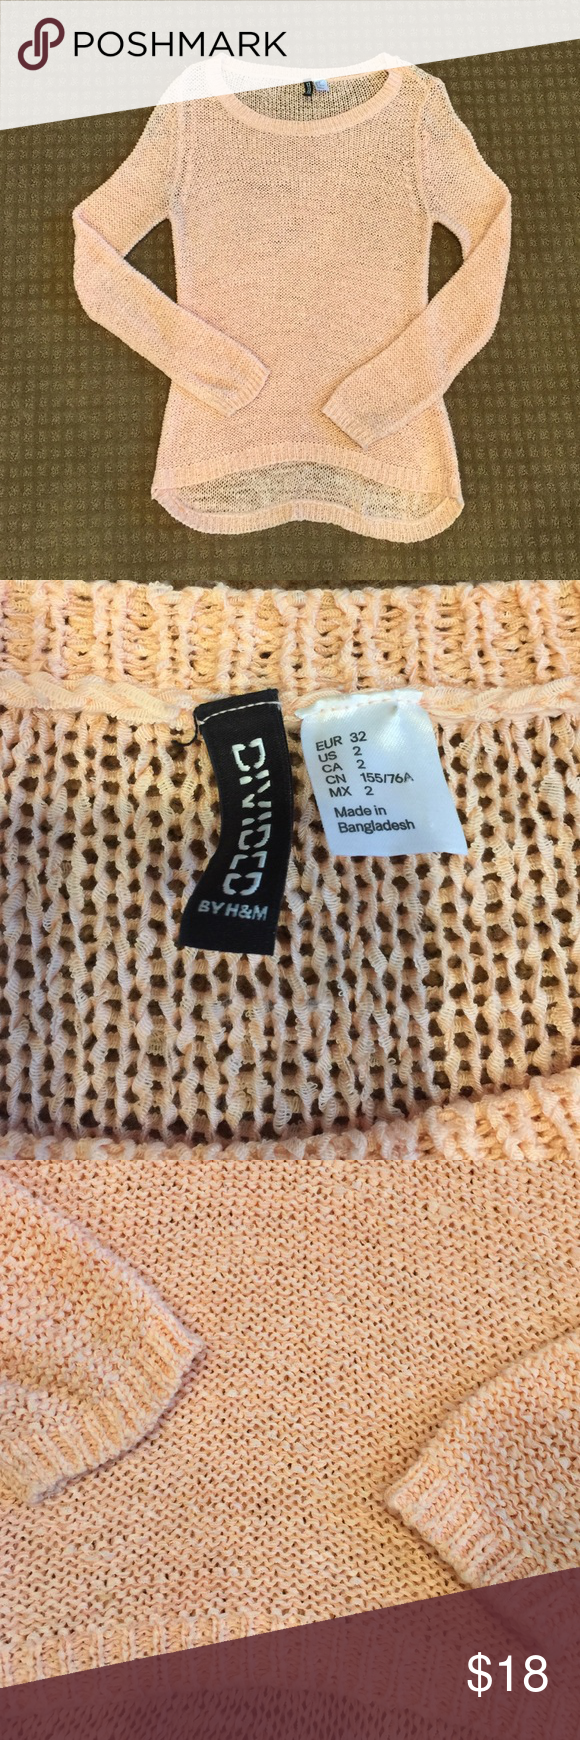 H&M Knit Sweater Super cute light pink Knit Sweater from H&M. Size ...